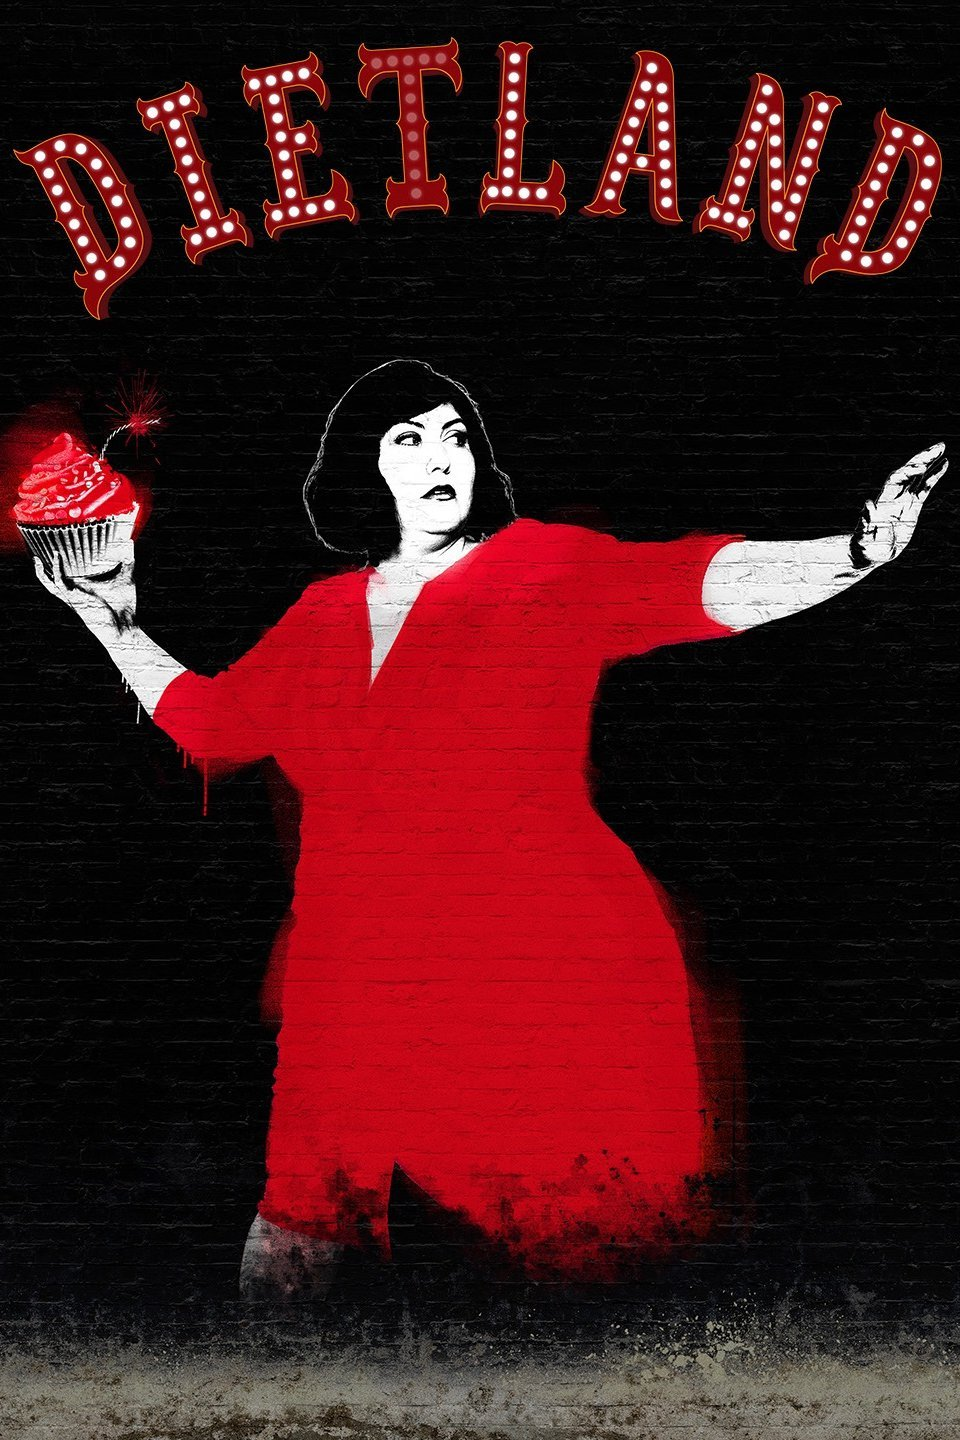 AMC promotional poster for Dietland features a brick wall painted with representation of series lead, Joy Nash, throwing a cupcake bomb. Dietland is so good!